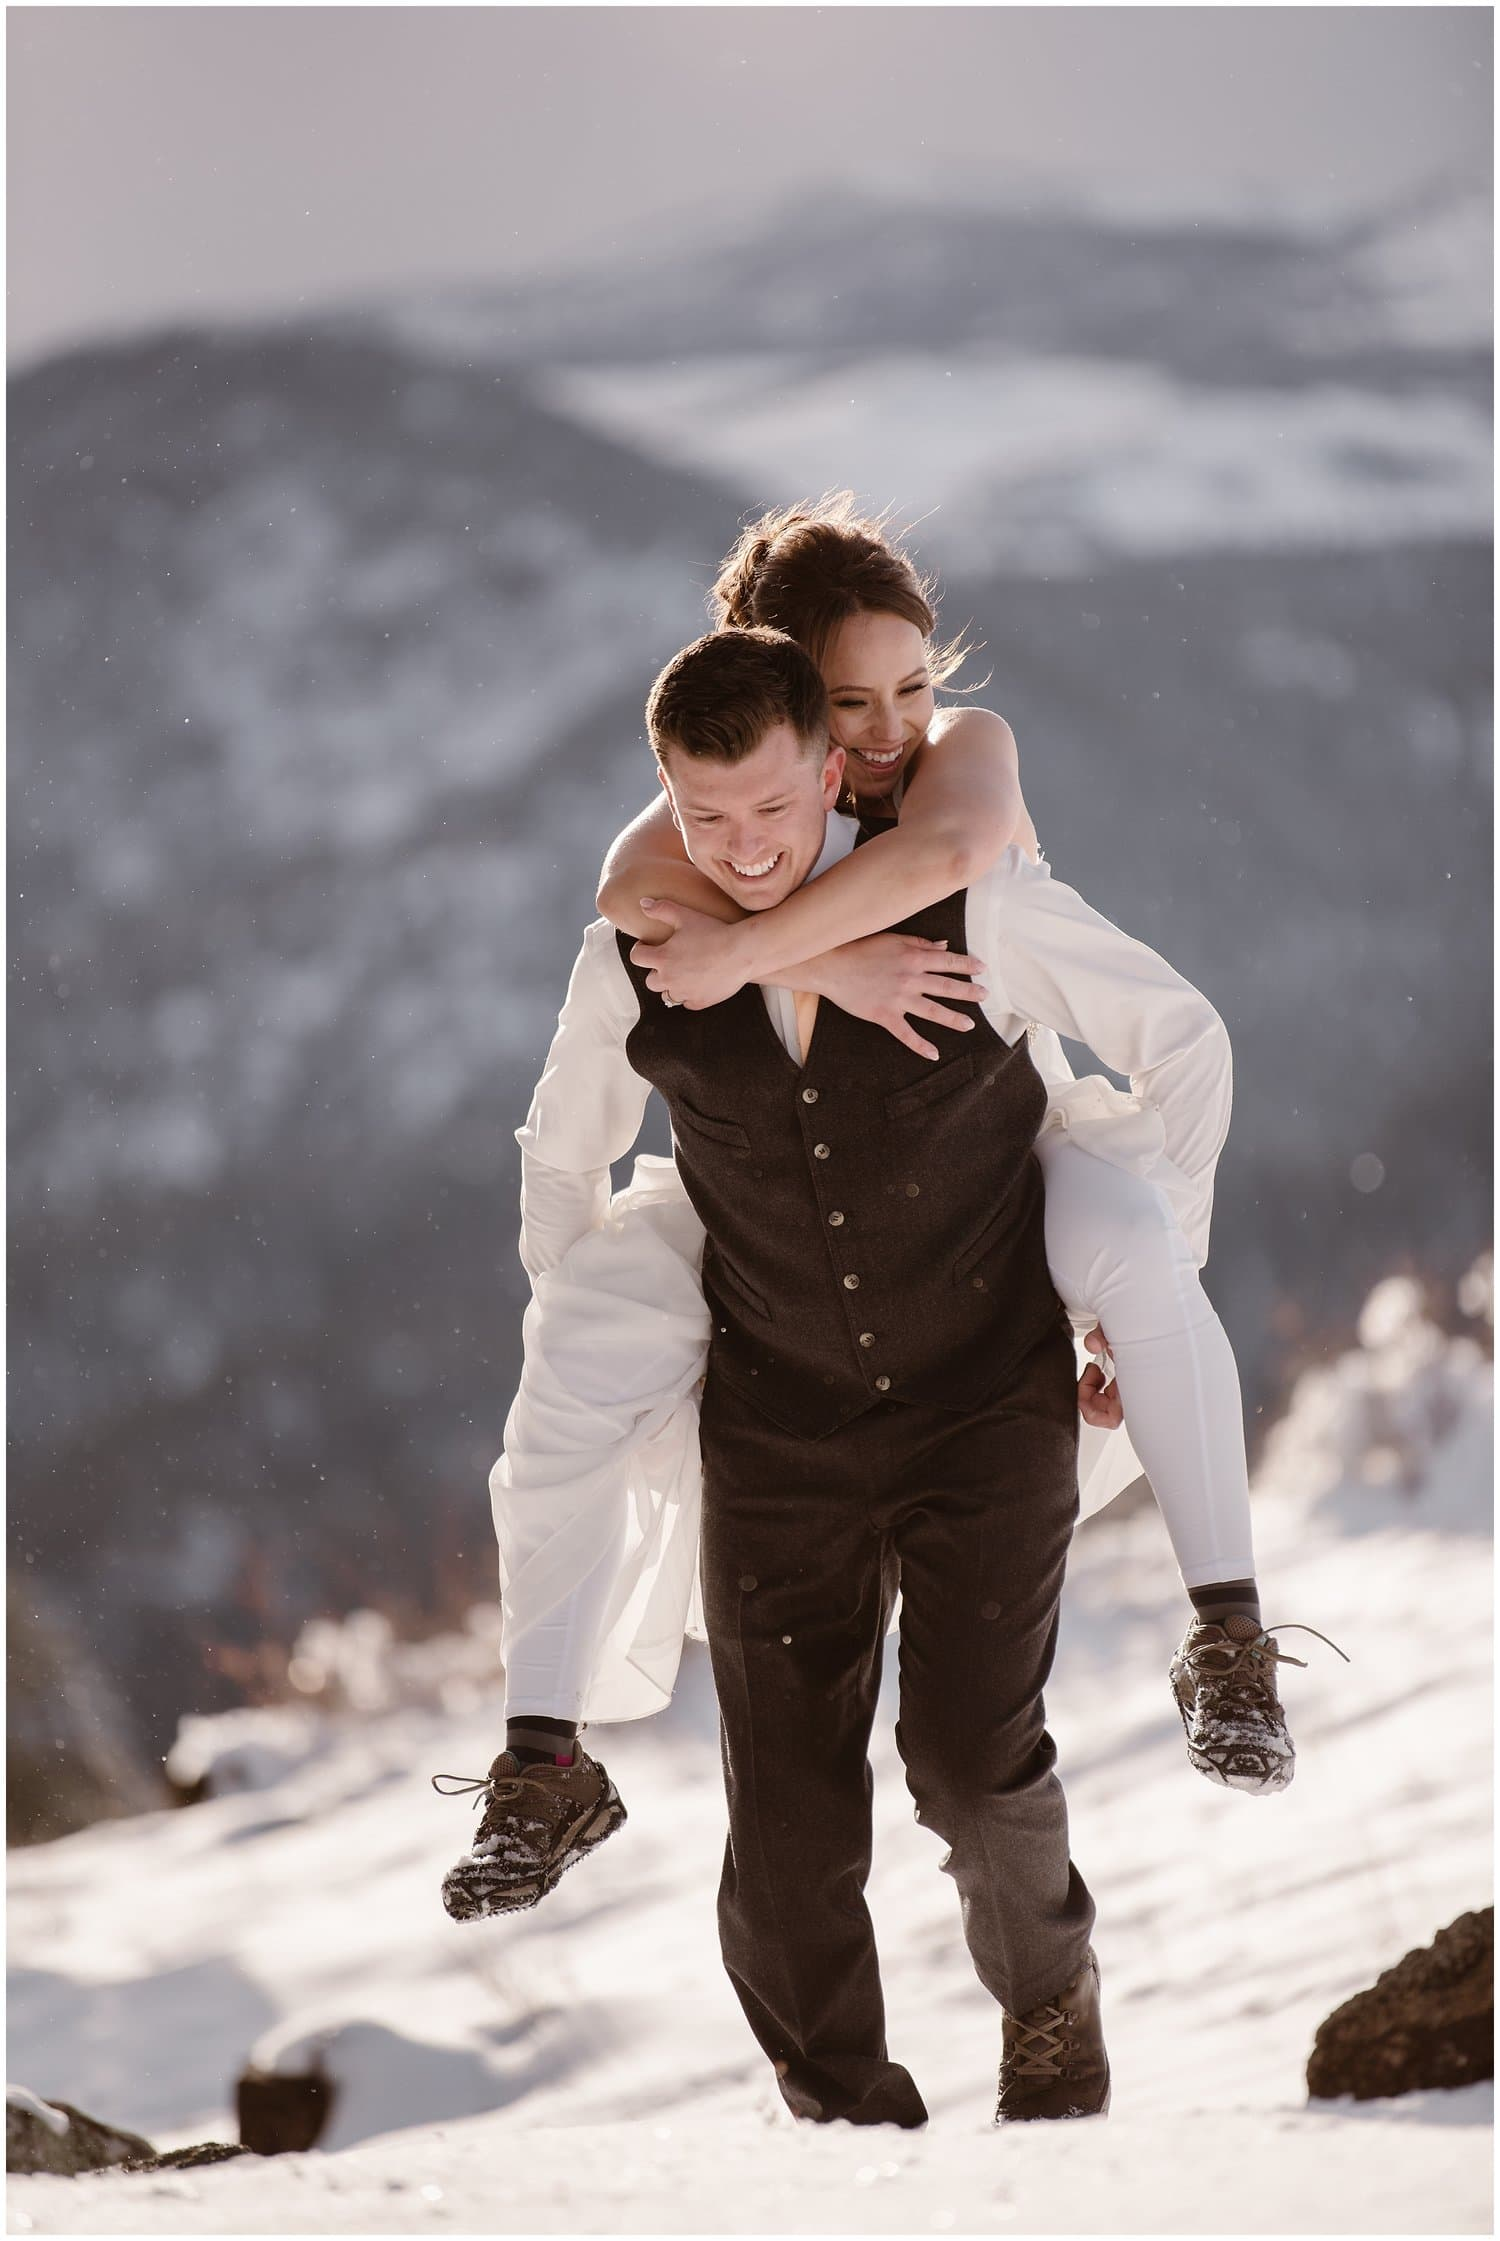 Groom carries bride on his back in the mountains on their wedding day.